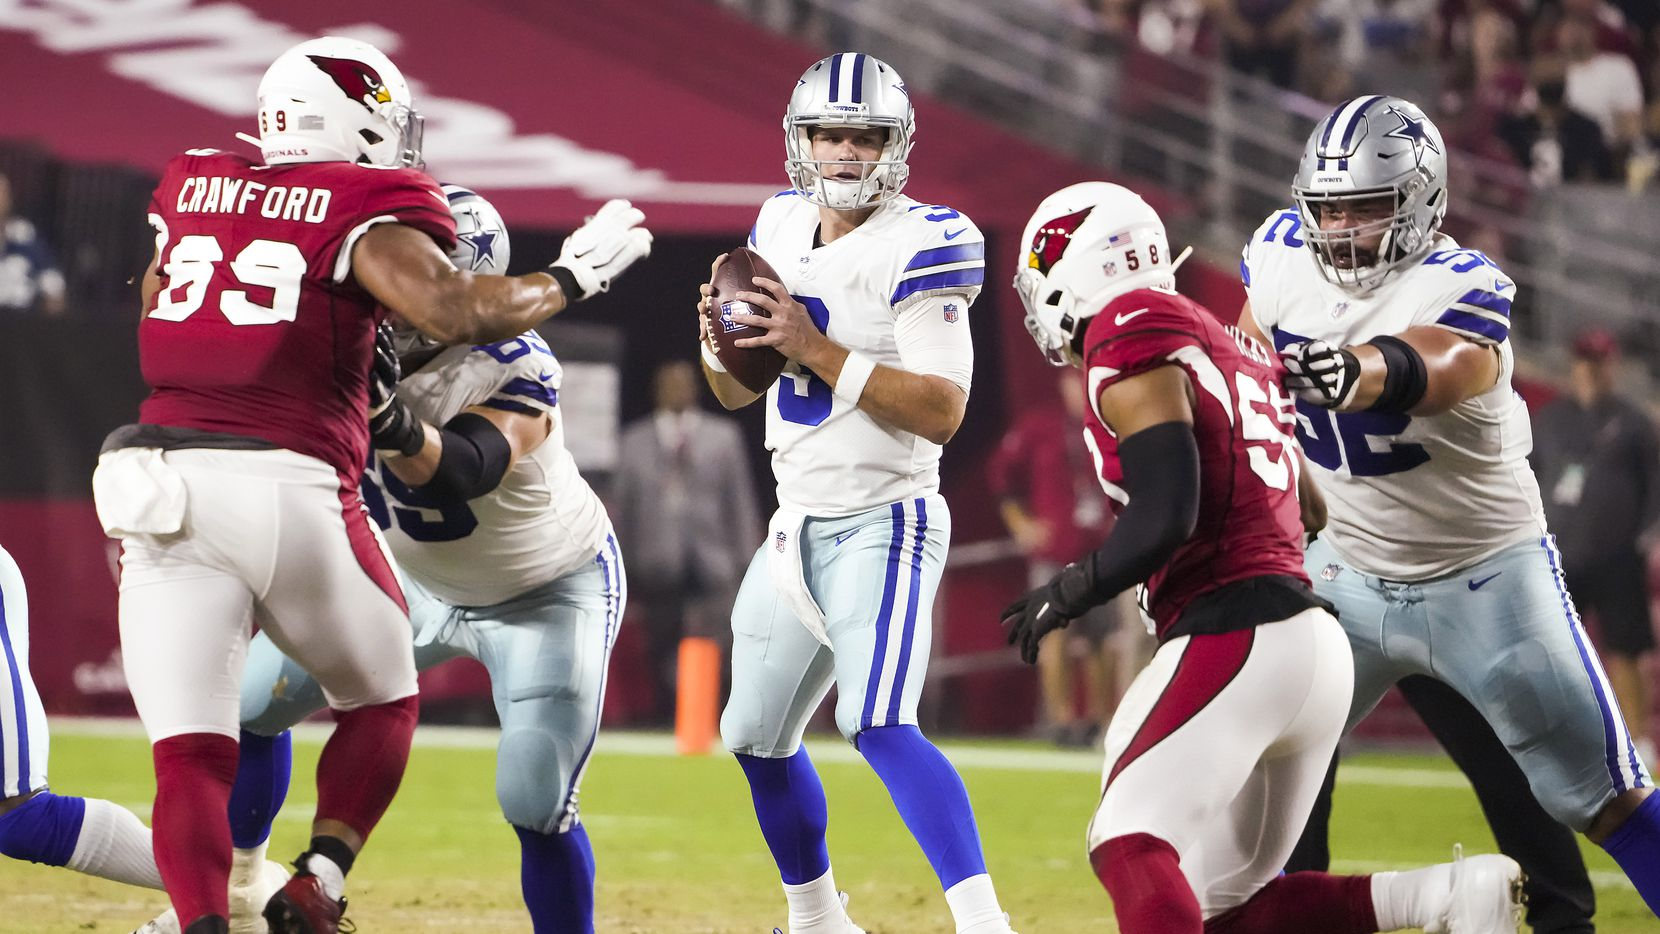 Dallas Cowboys quarterback Garrett Gilbert (3) looks to pass as tackle Brandon Knight (69) and guard Connor Williams (52) provide protection during the first quarter of an NFL football game against the Arizona Cardinals at State Farm Stadium on Friday, Aug. 13, 2021, in Glendale, Ariz. (Smiley N. Pool/The Dallas Morning News)